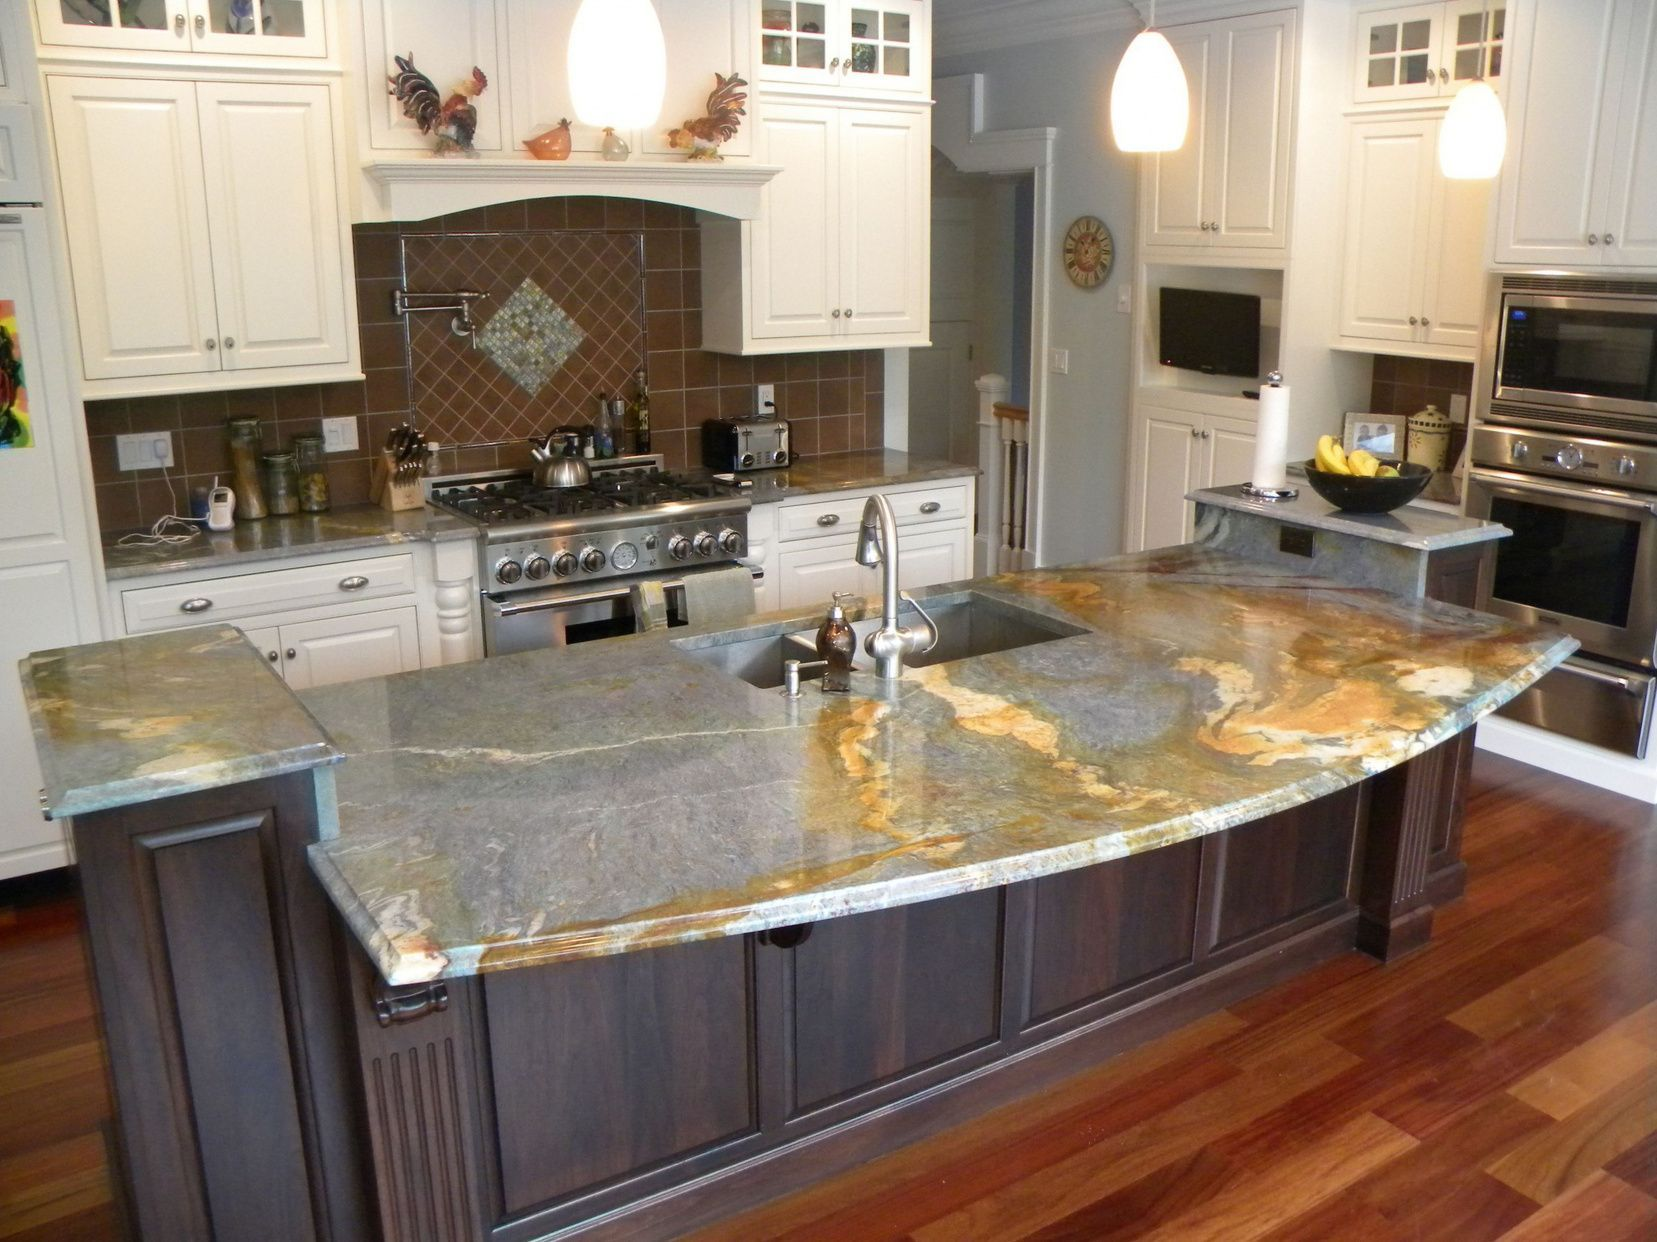 How To Choose New Kitchen Countertops When Kitchen Remodeling Outdoor Kitchen Countertops Kitchen Design Marble Countertops Kitchen